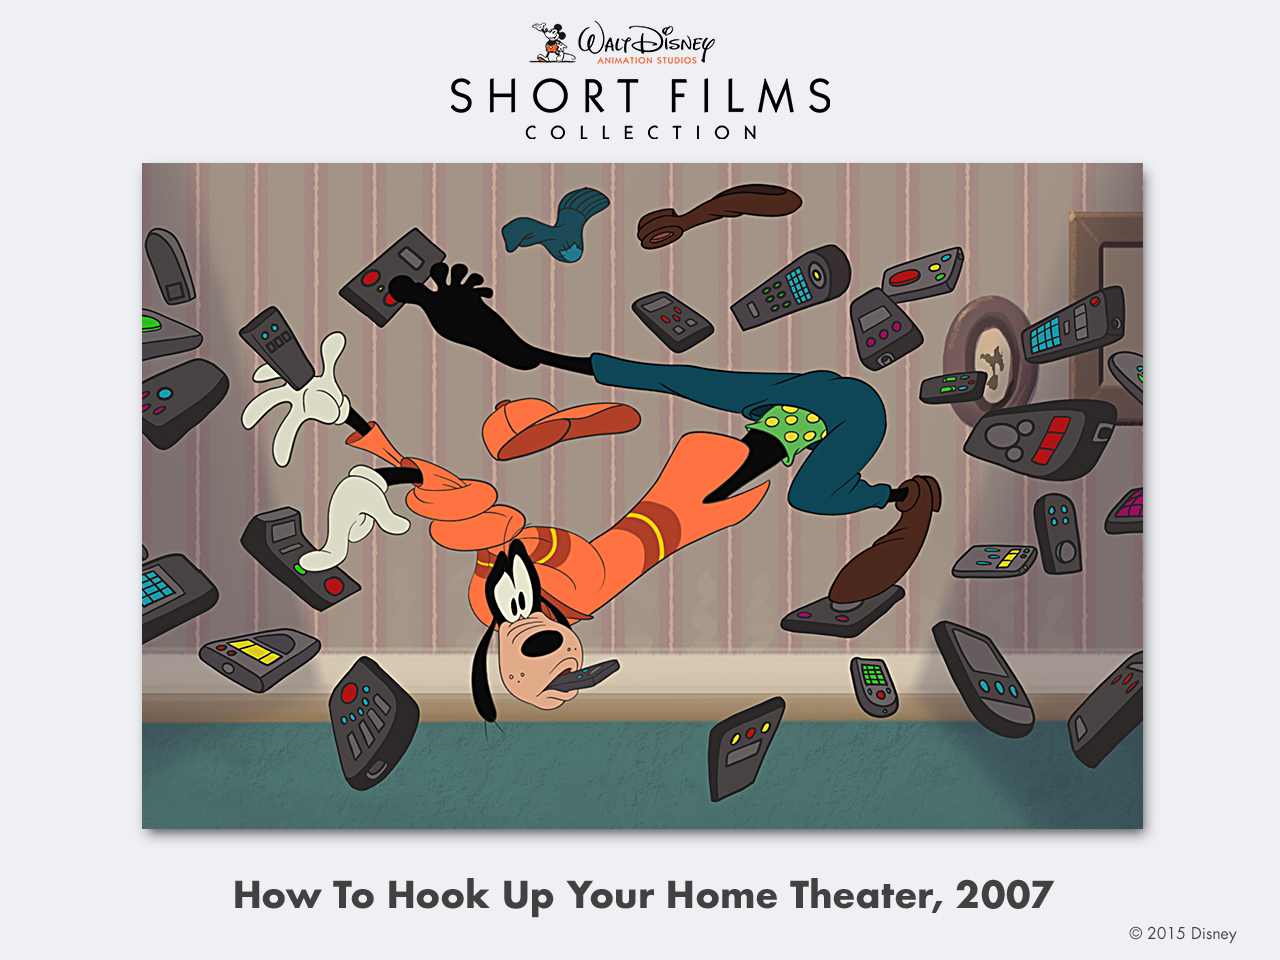 How to Hook Up Your Home Theater kapak